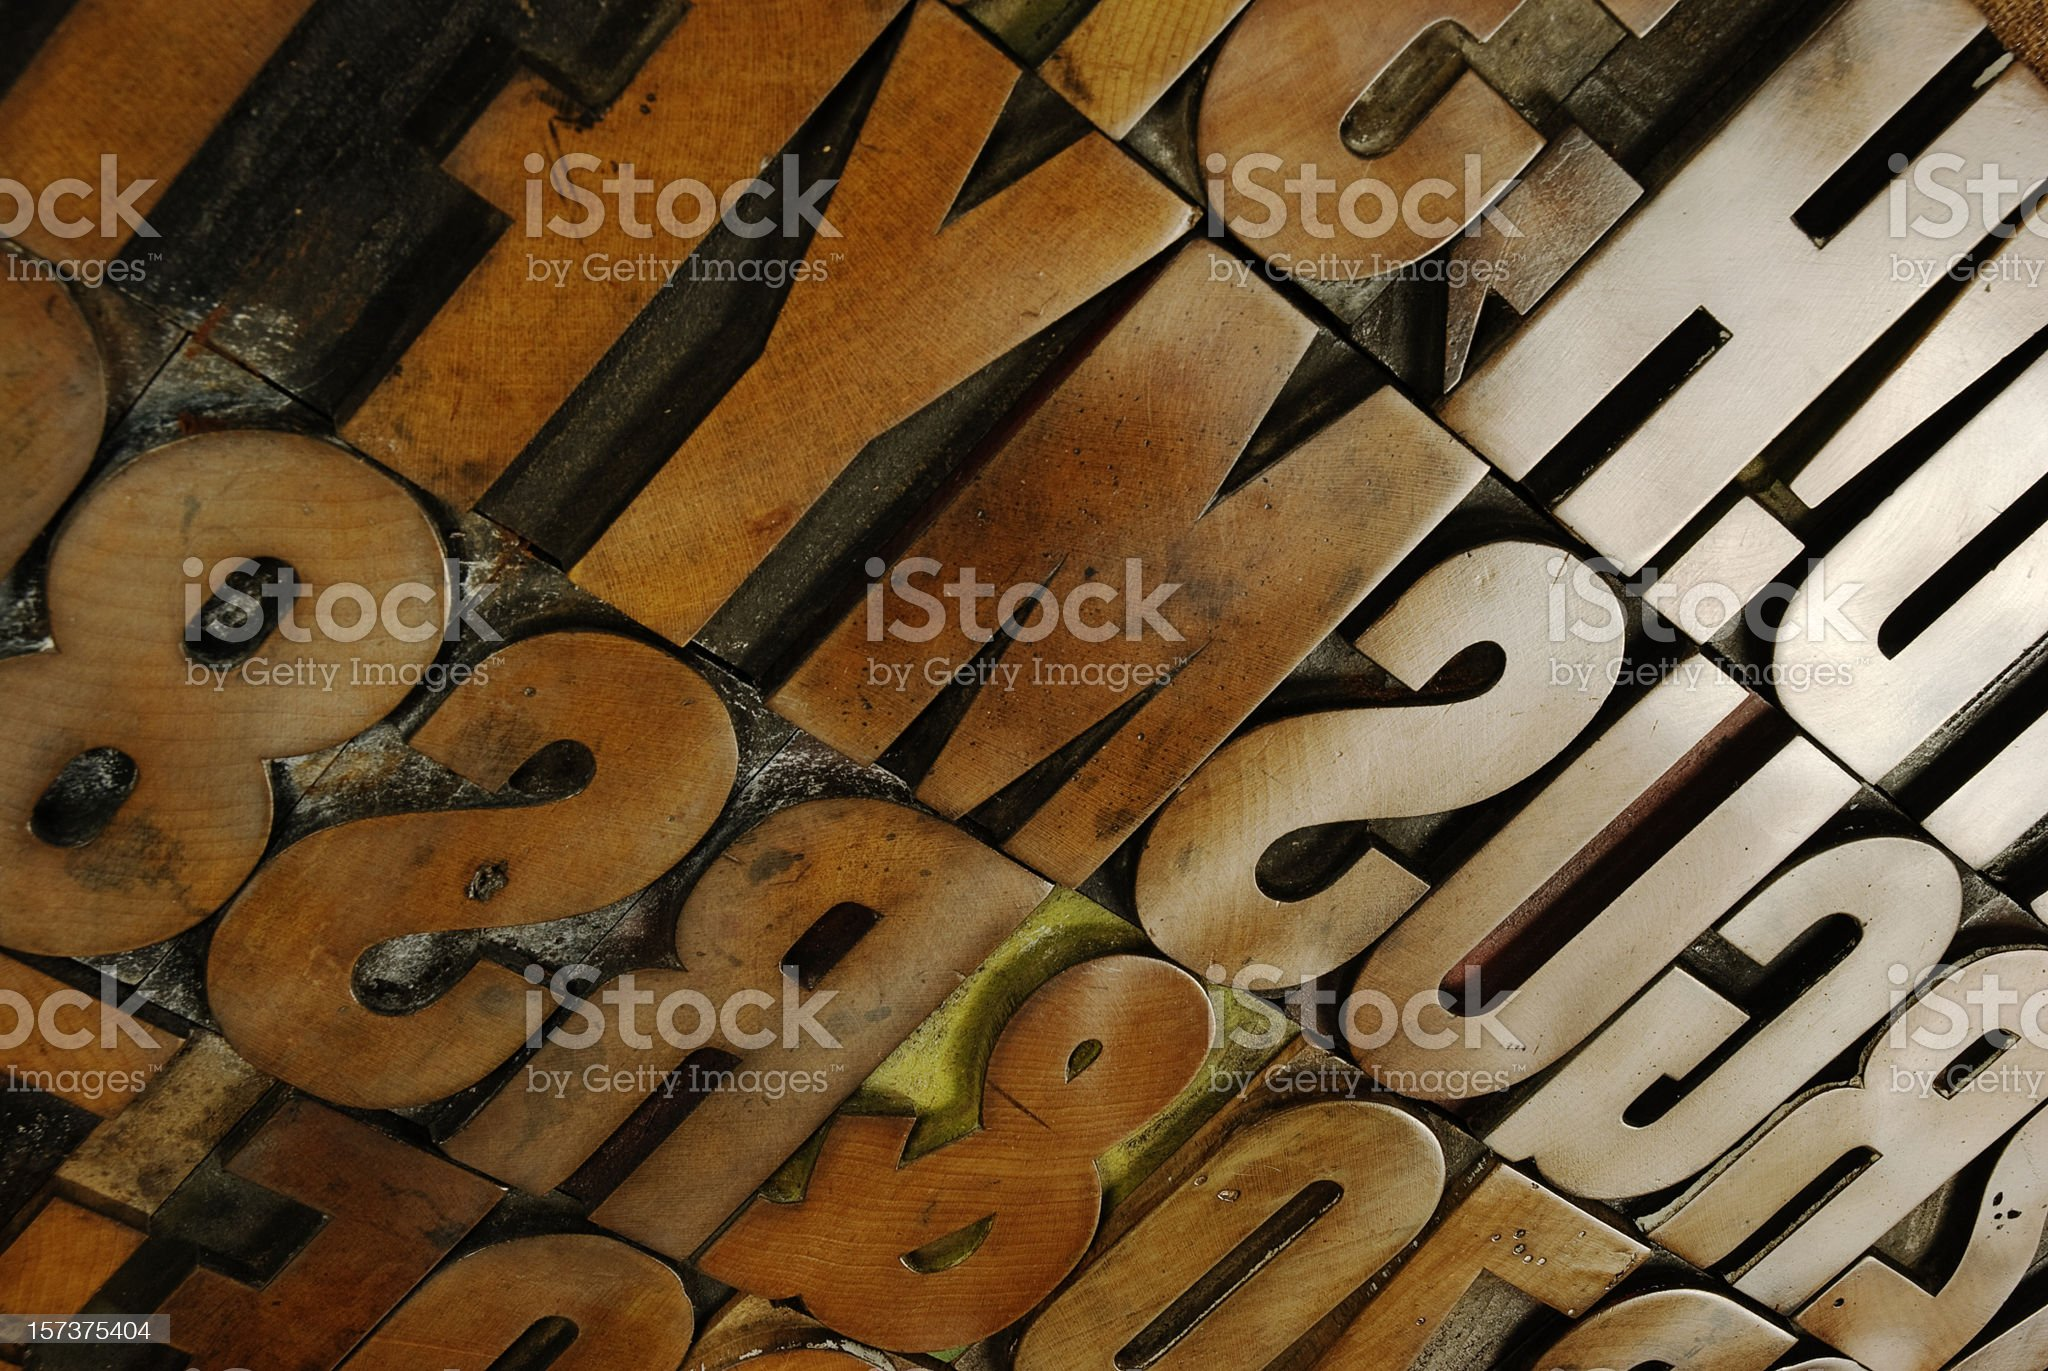 Wood type board extravaganza royalty-free stock photo